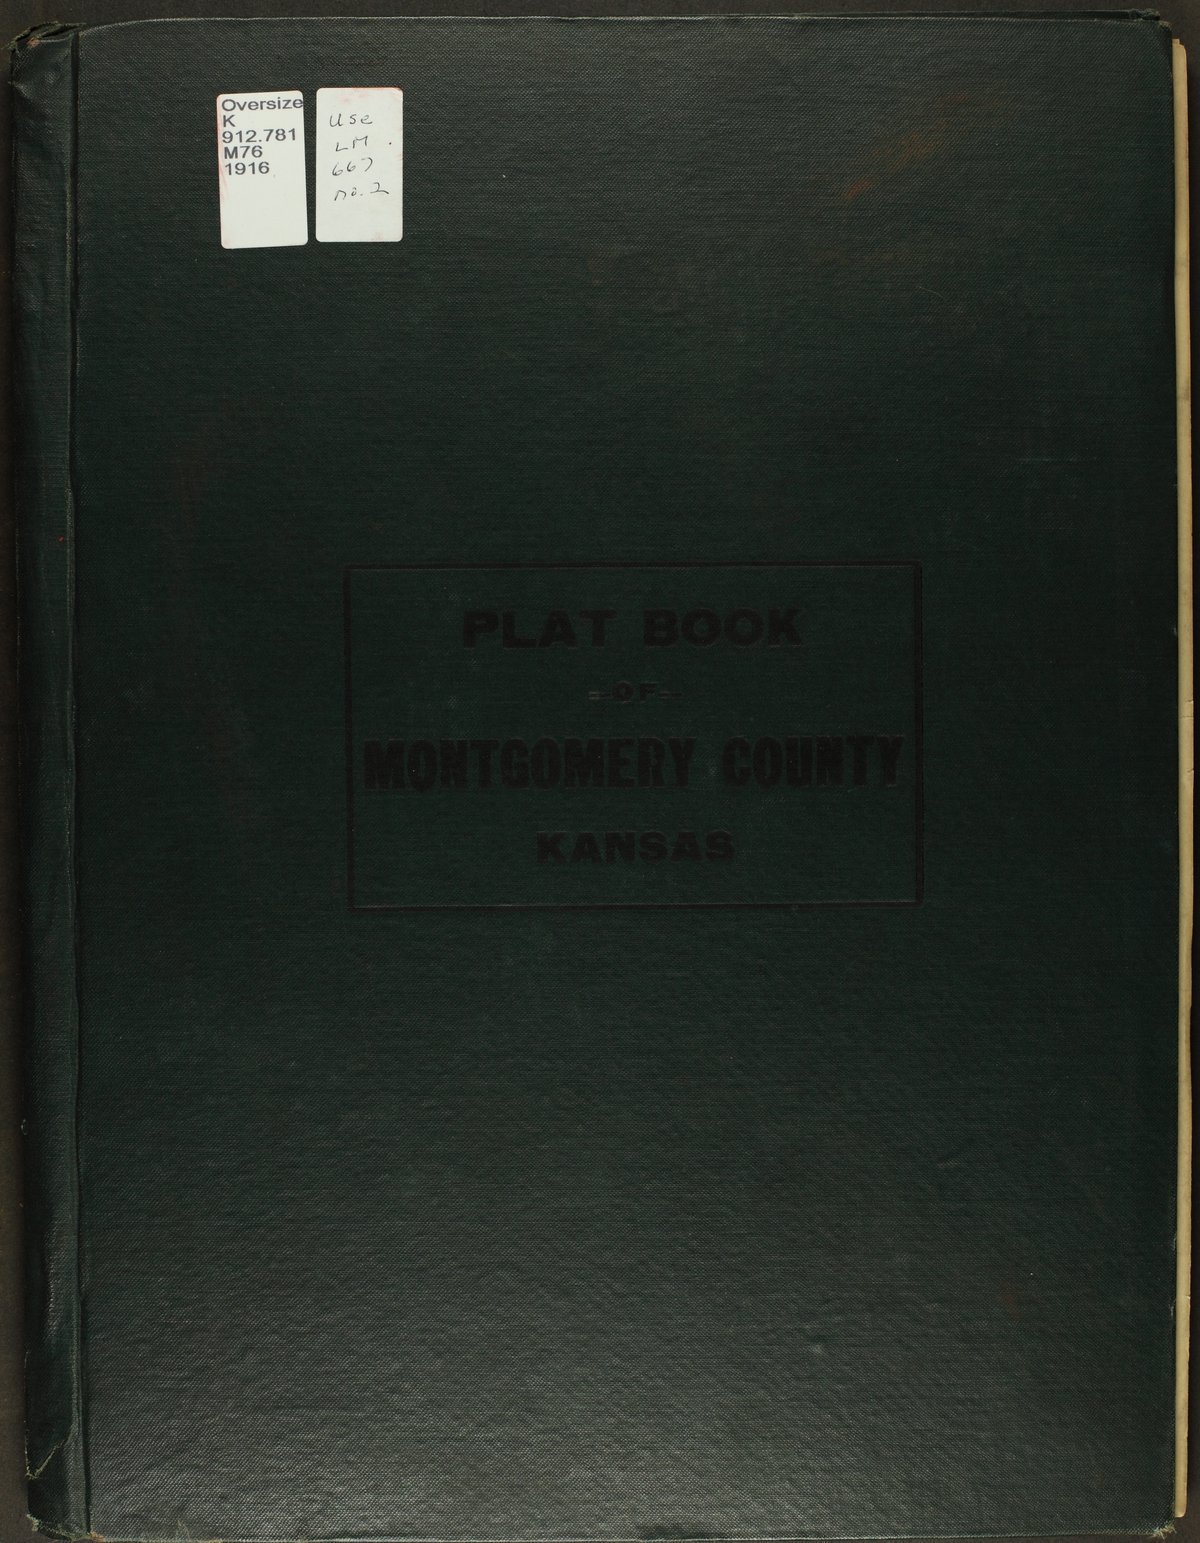 Atlas and plat book of Montgomery County, Kansas - Front Cover